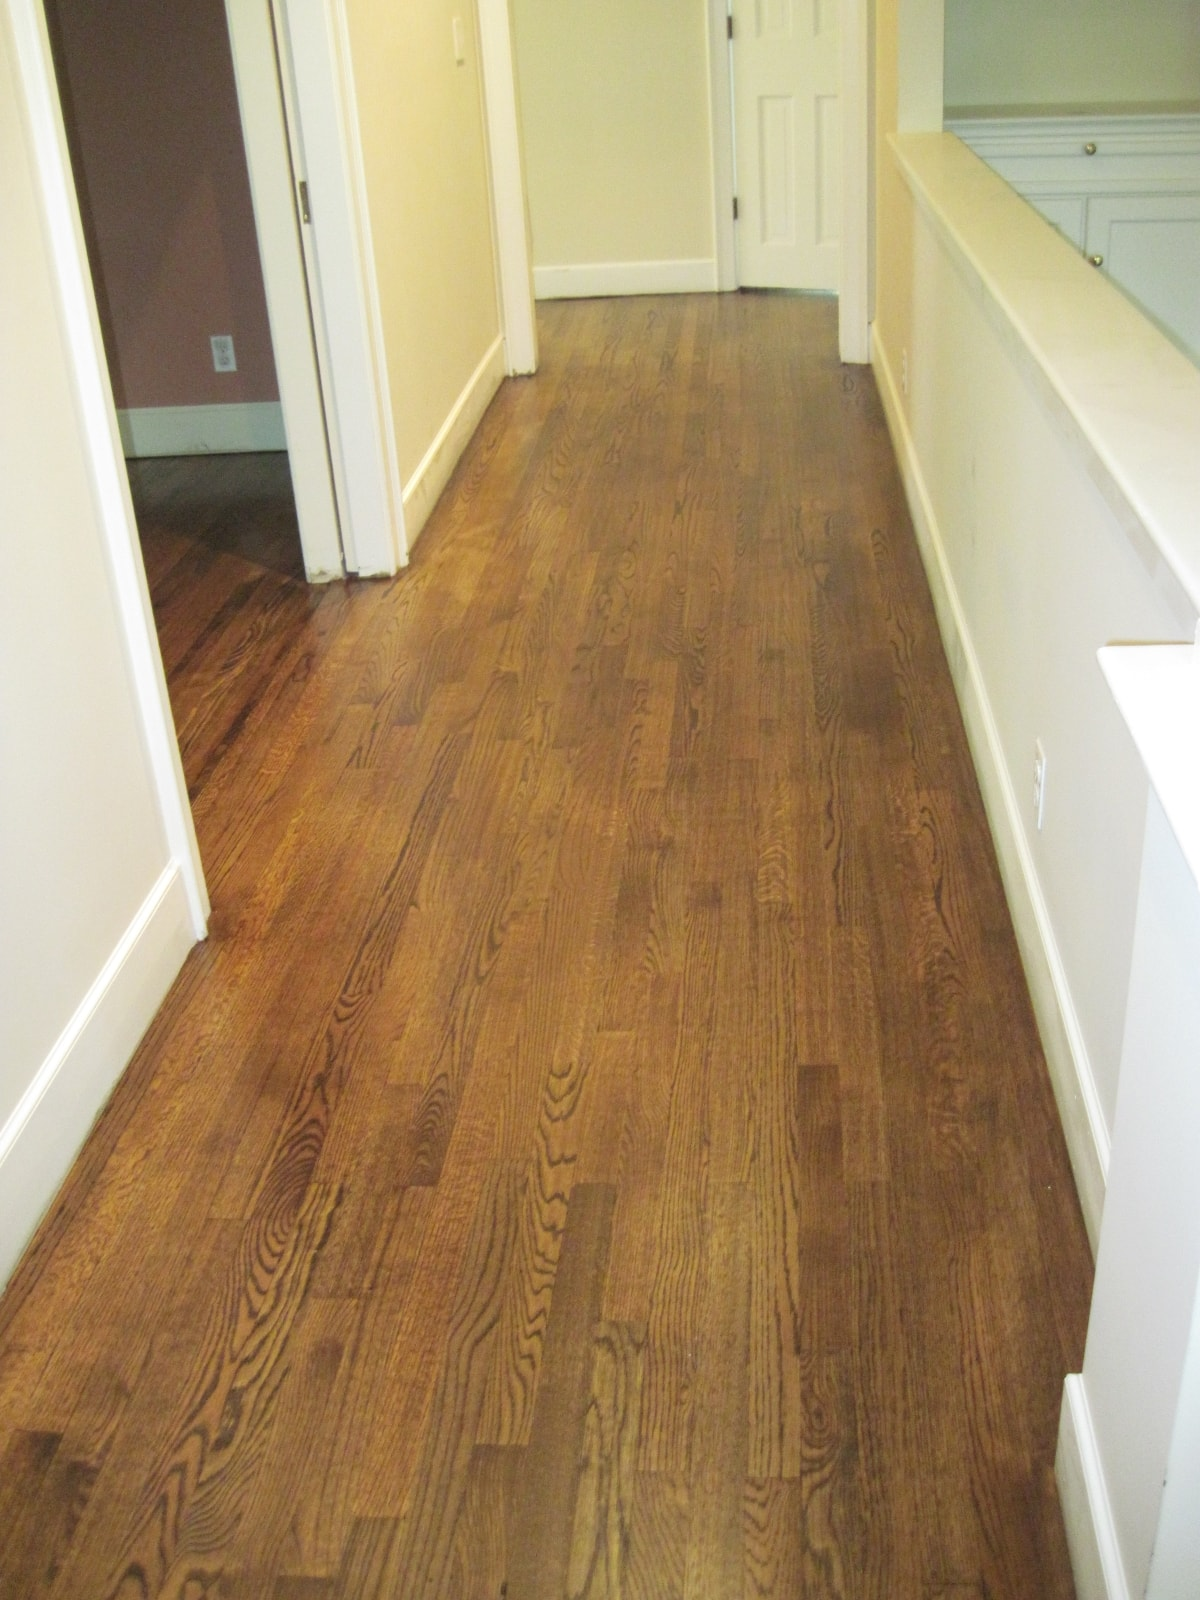 Red Oak Hardwood Stained Medford MA 2-min